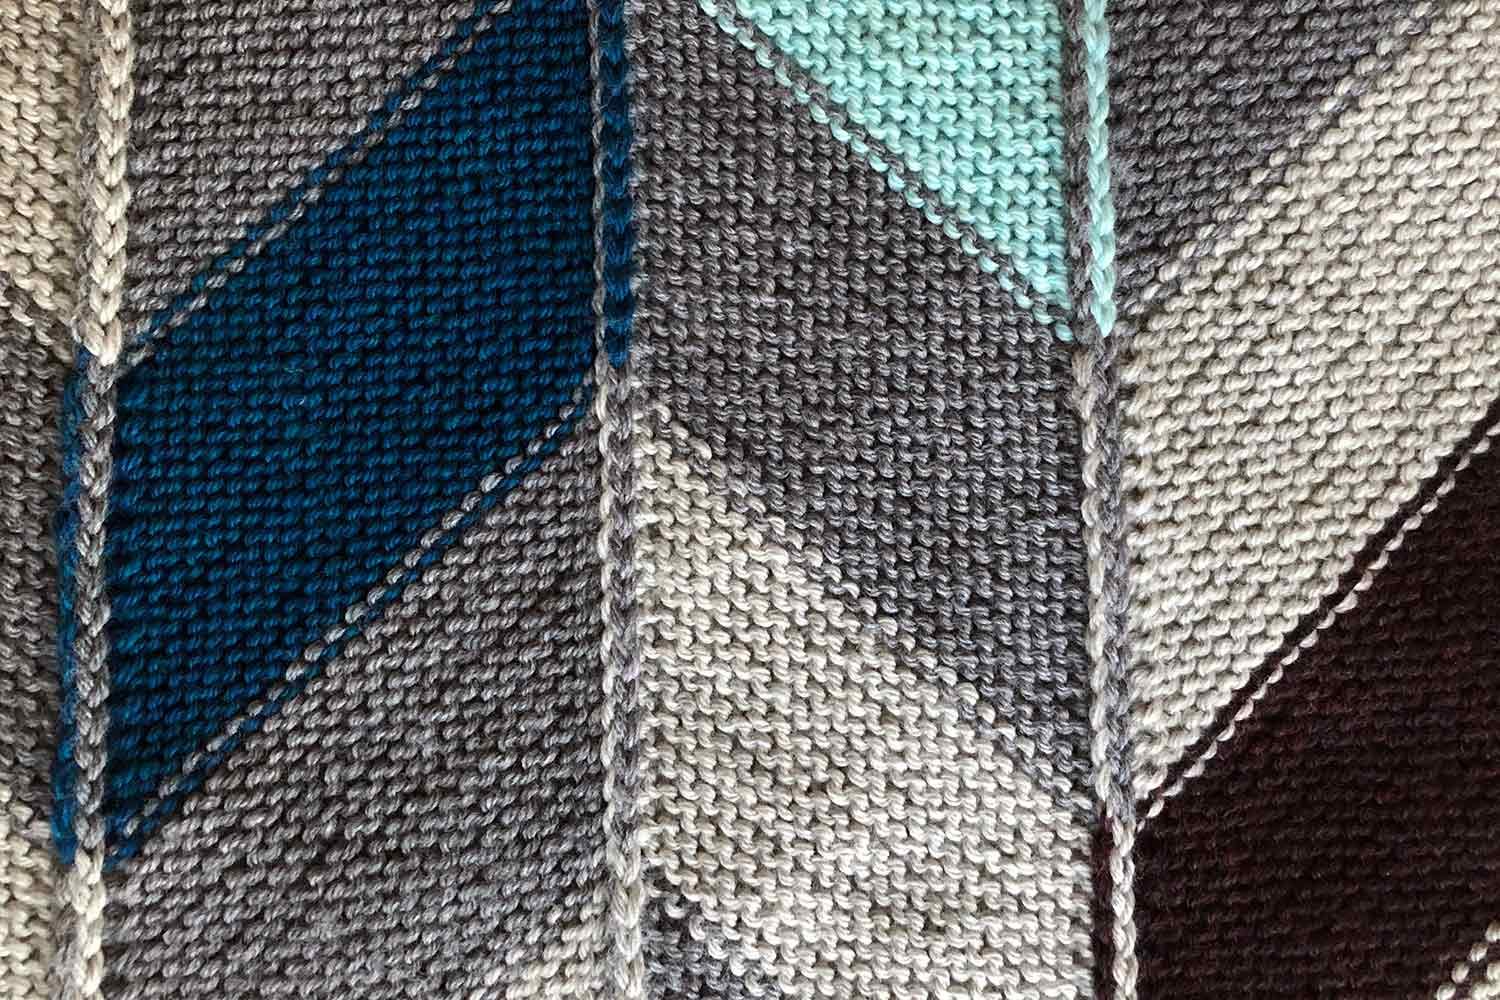 Wrong side of garter stitch modular knitting with colourful parallelogram shapes joined to created chevrons and showing modular seams.